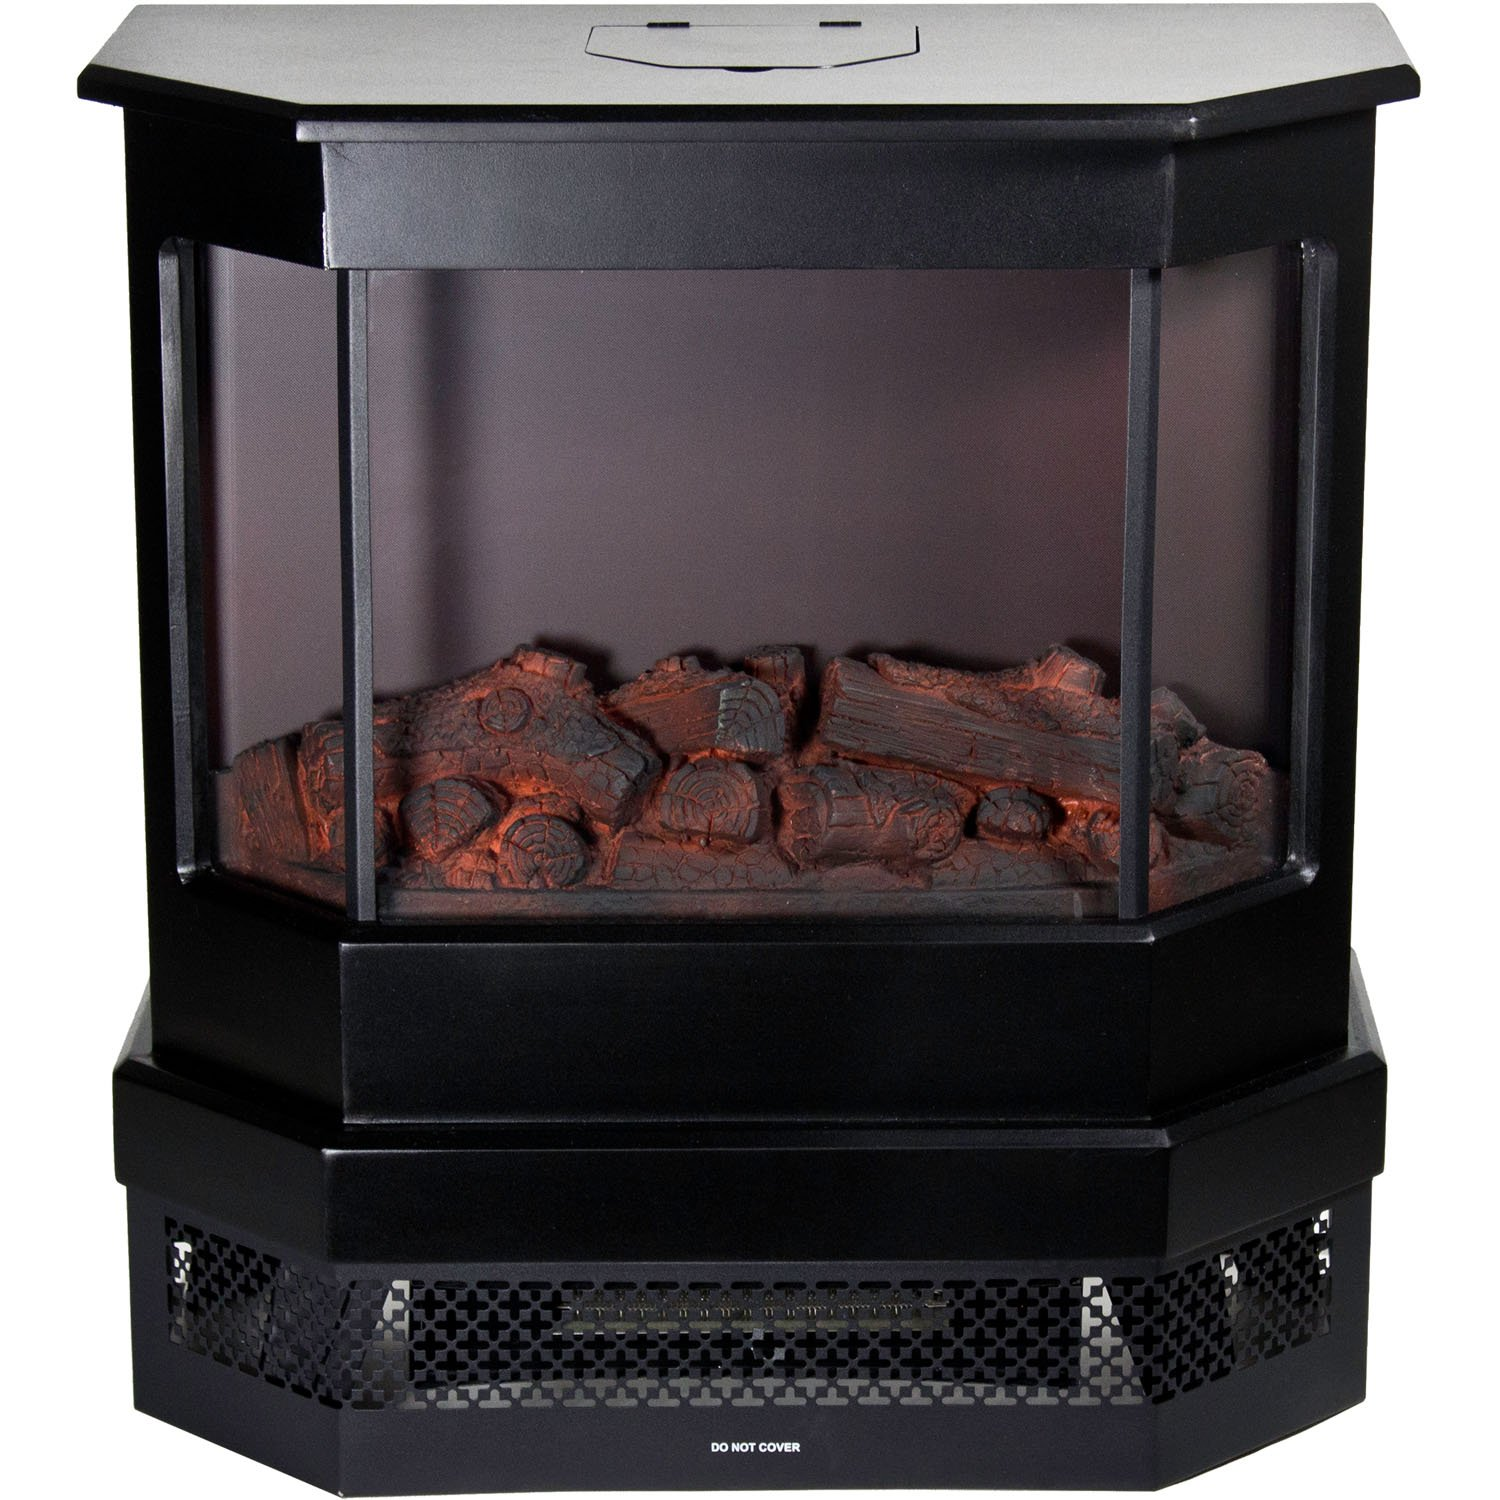 Amazon.com: Warm House CMSF-10310 Cleveland Floor Standing Electric Fireplace: Home & Kitchen